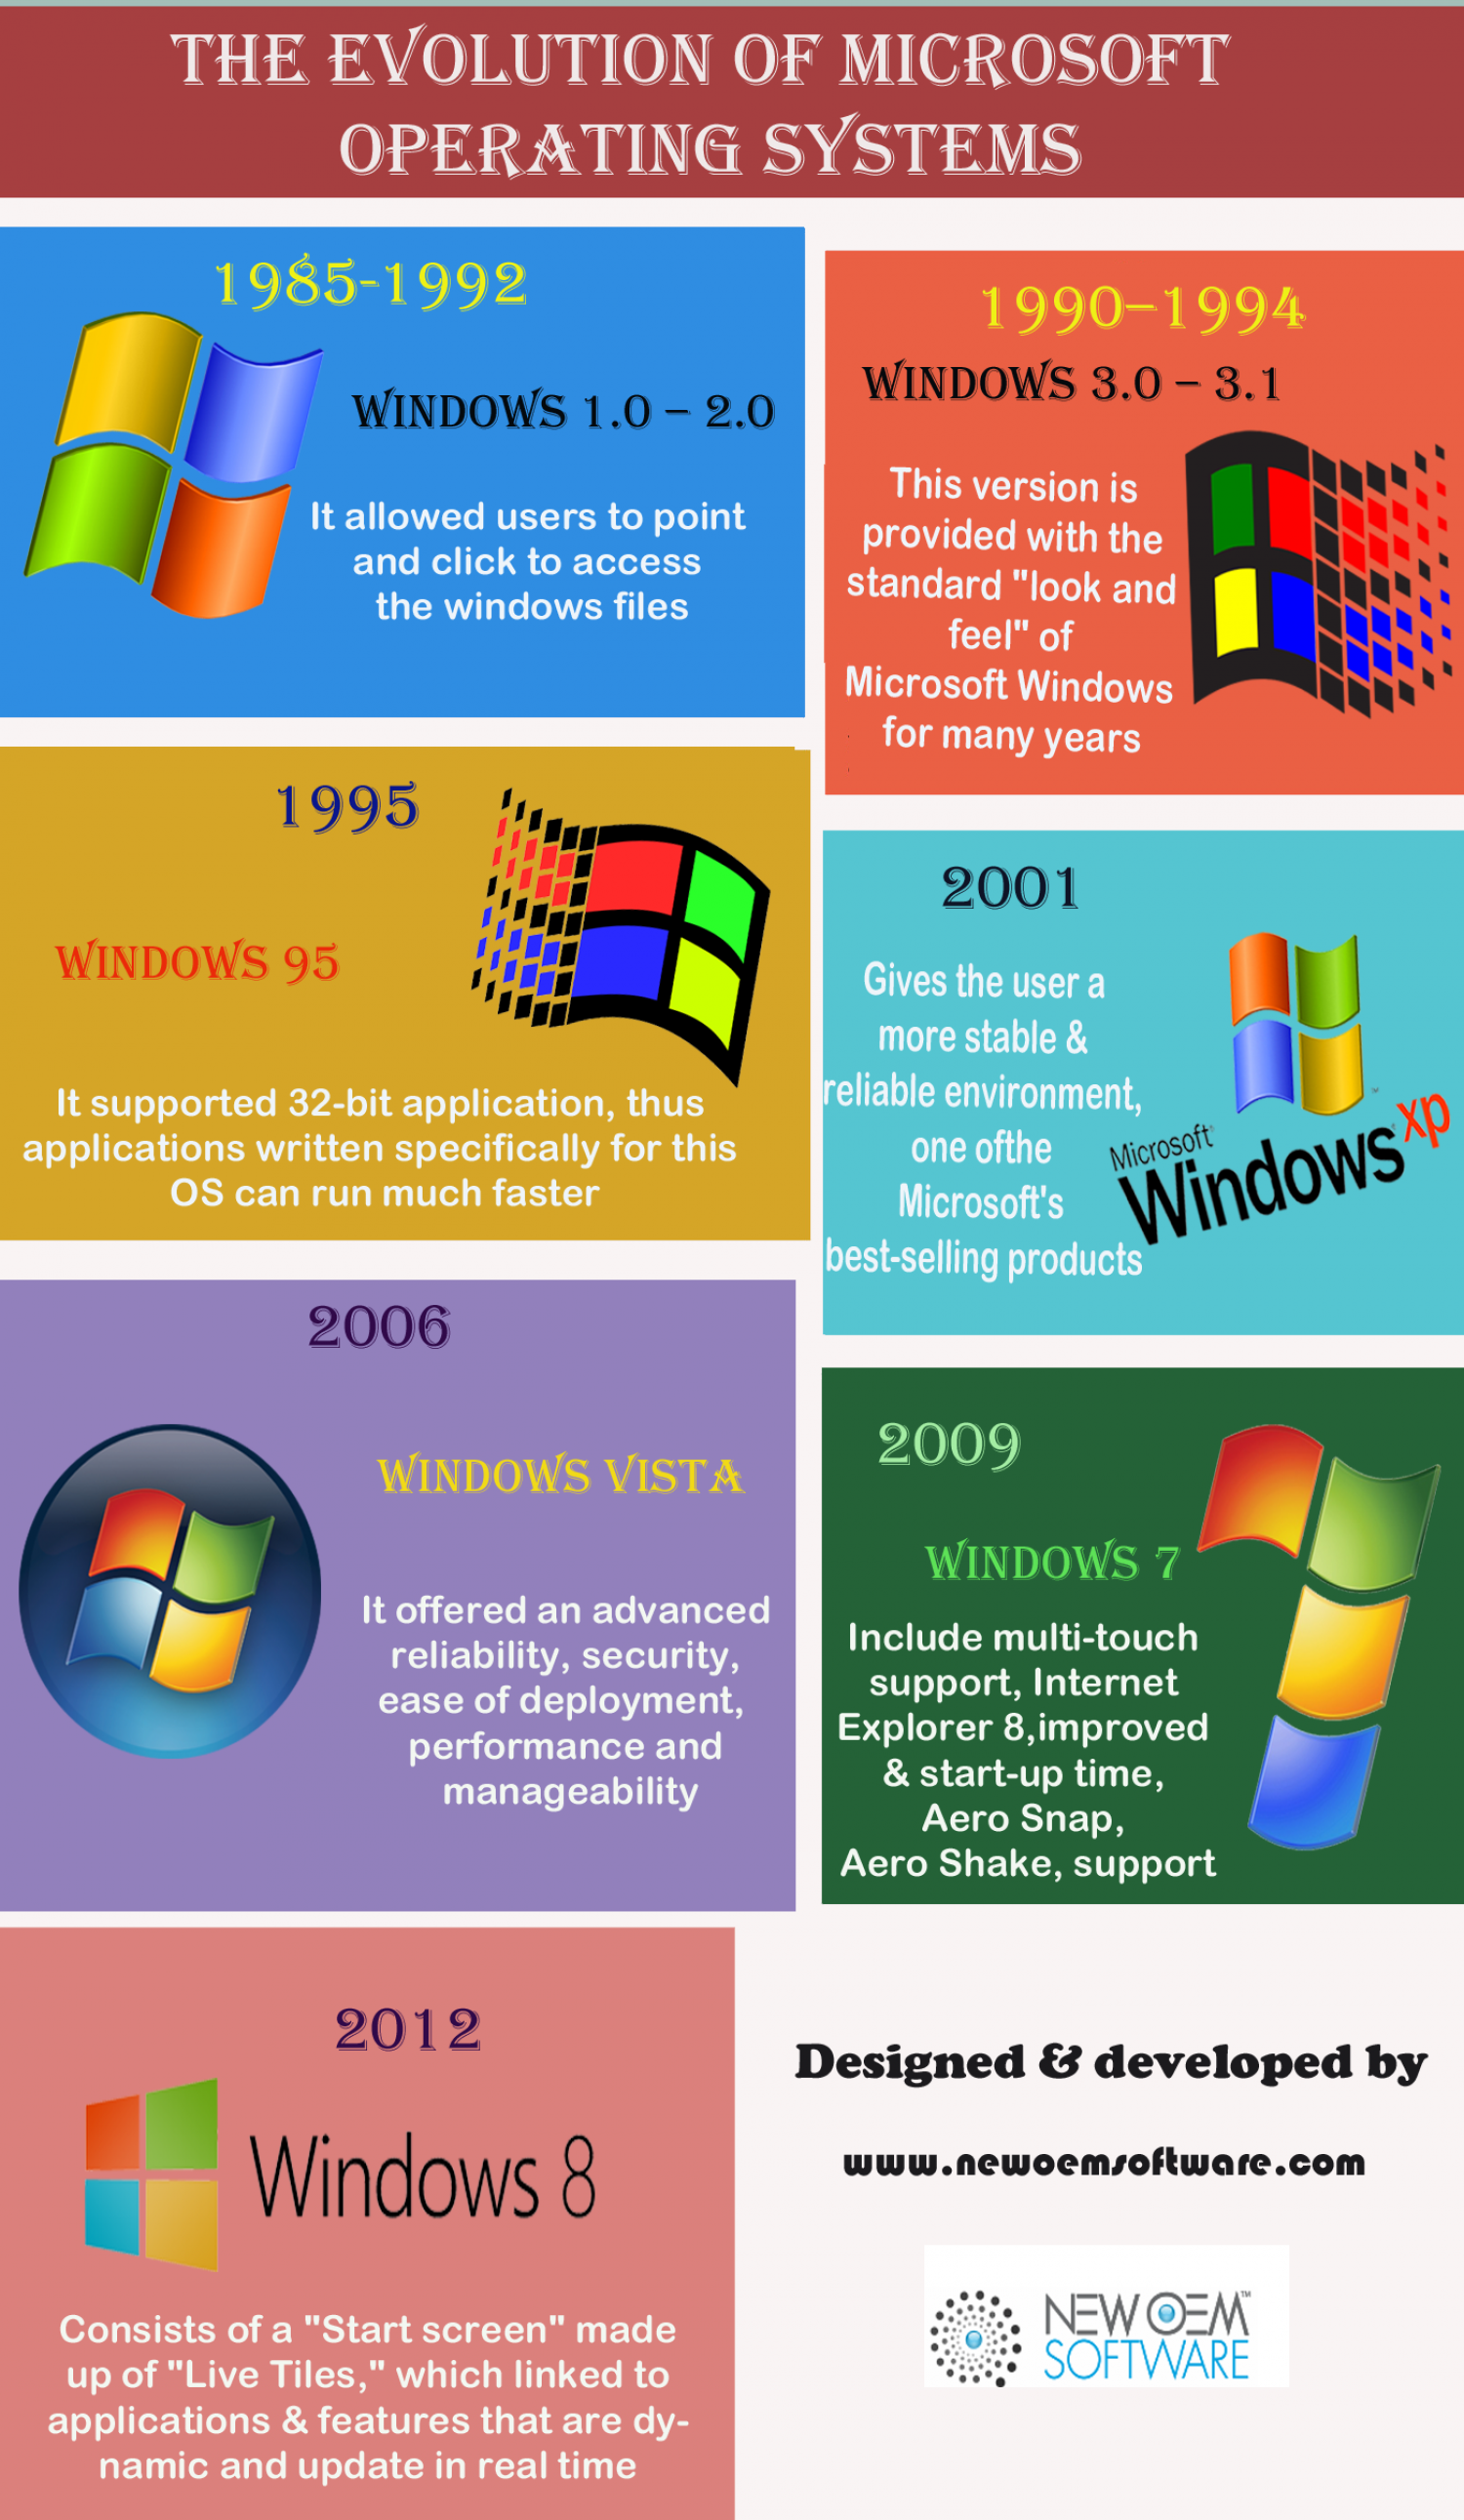 The Evolution of Microsoft Operating Systems Infographic